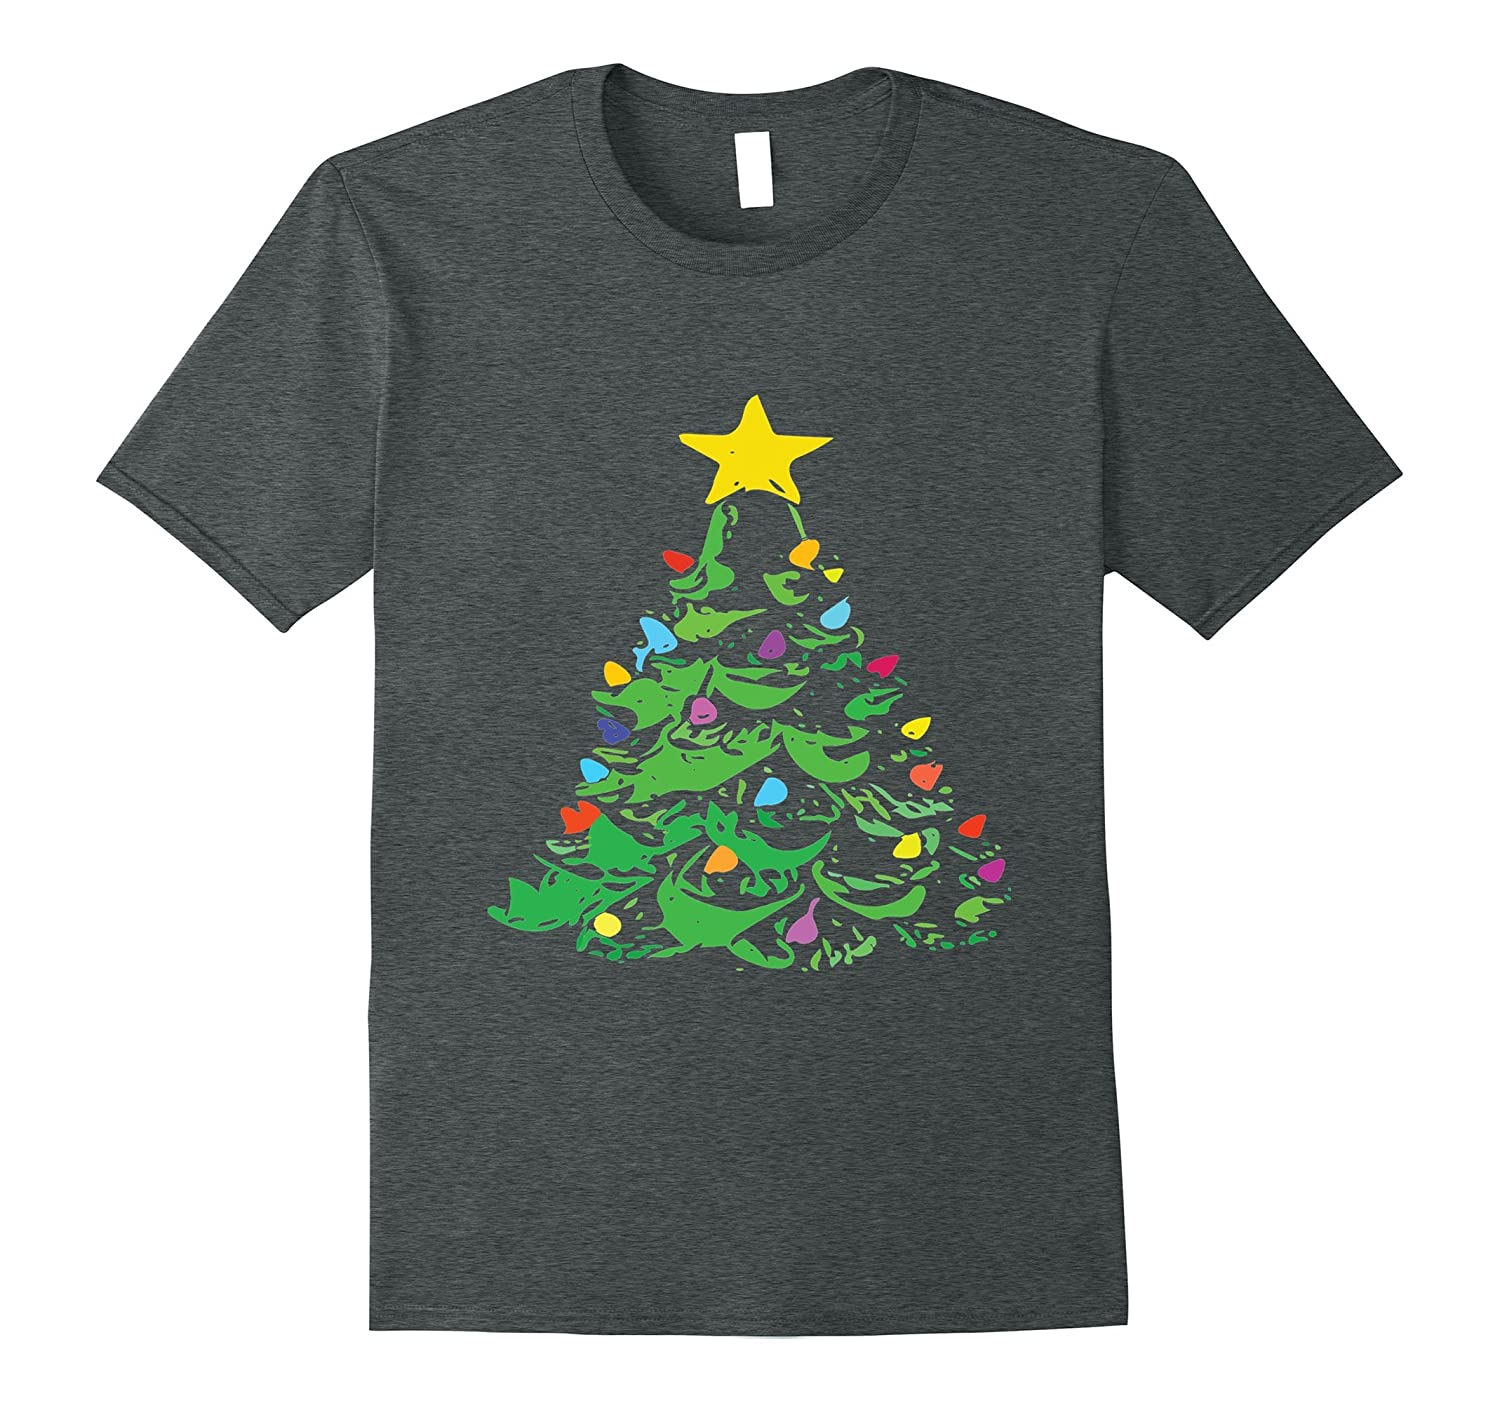 Retro Vintage Ceramic Christmas Tree Shirt Anz